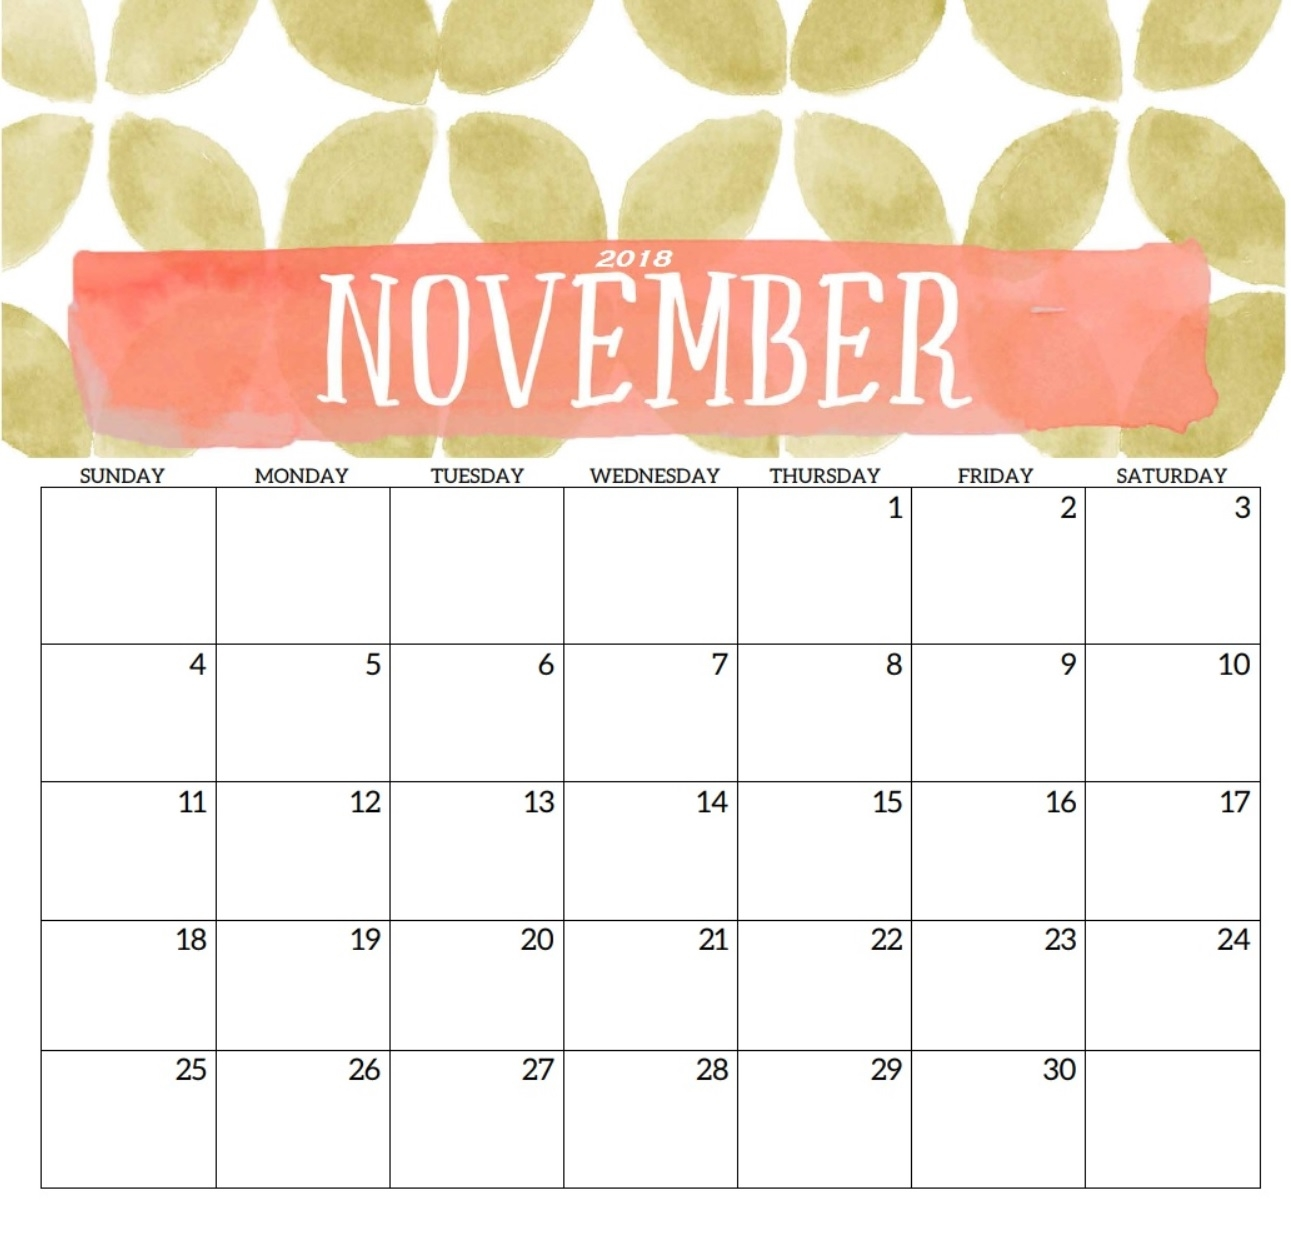 november 2018 blank printable calendar templates december 2018::November 2018 Calendar Template